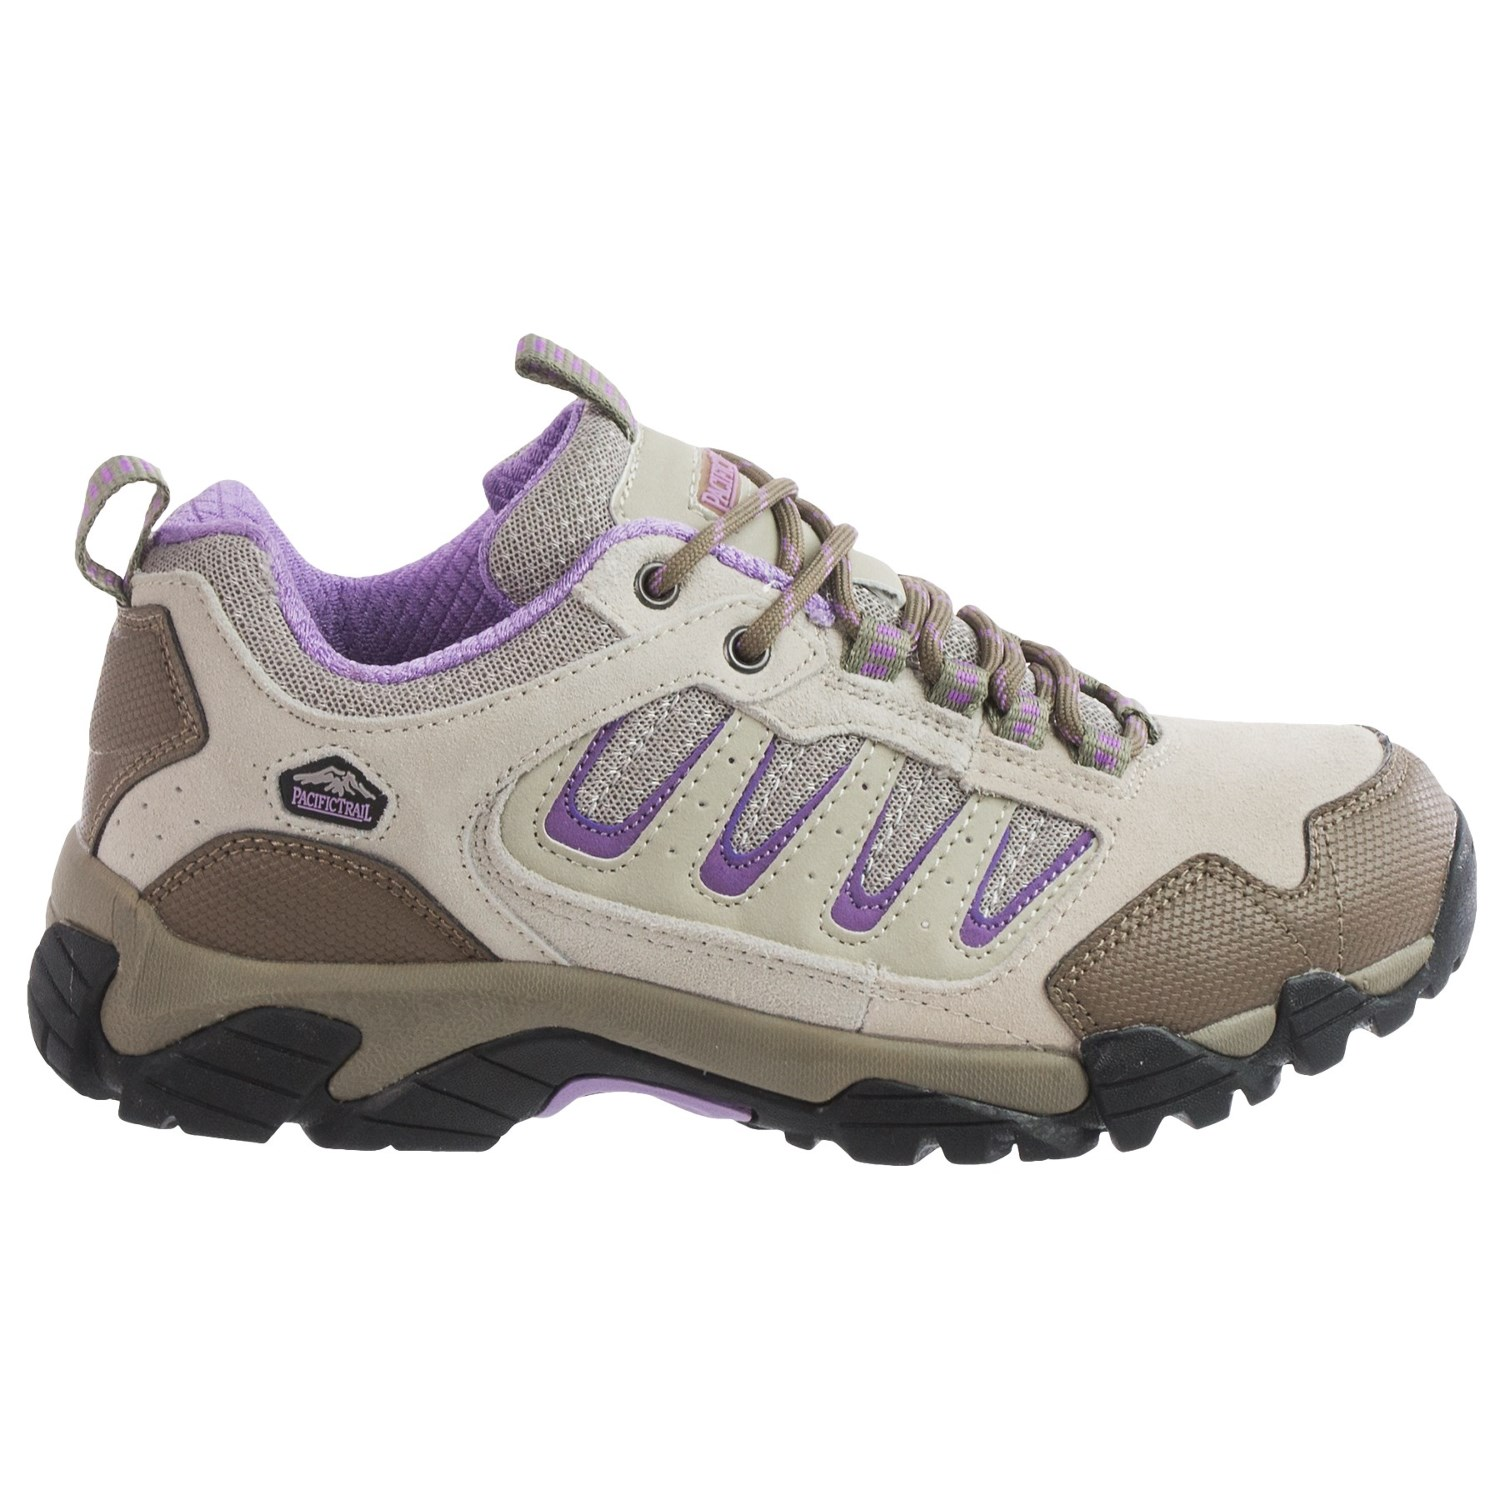 Pacific Trail Plateau Women S Hiking Shoes